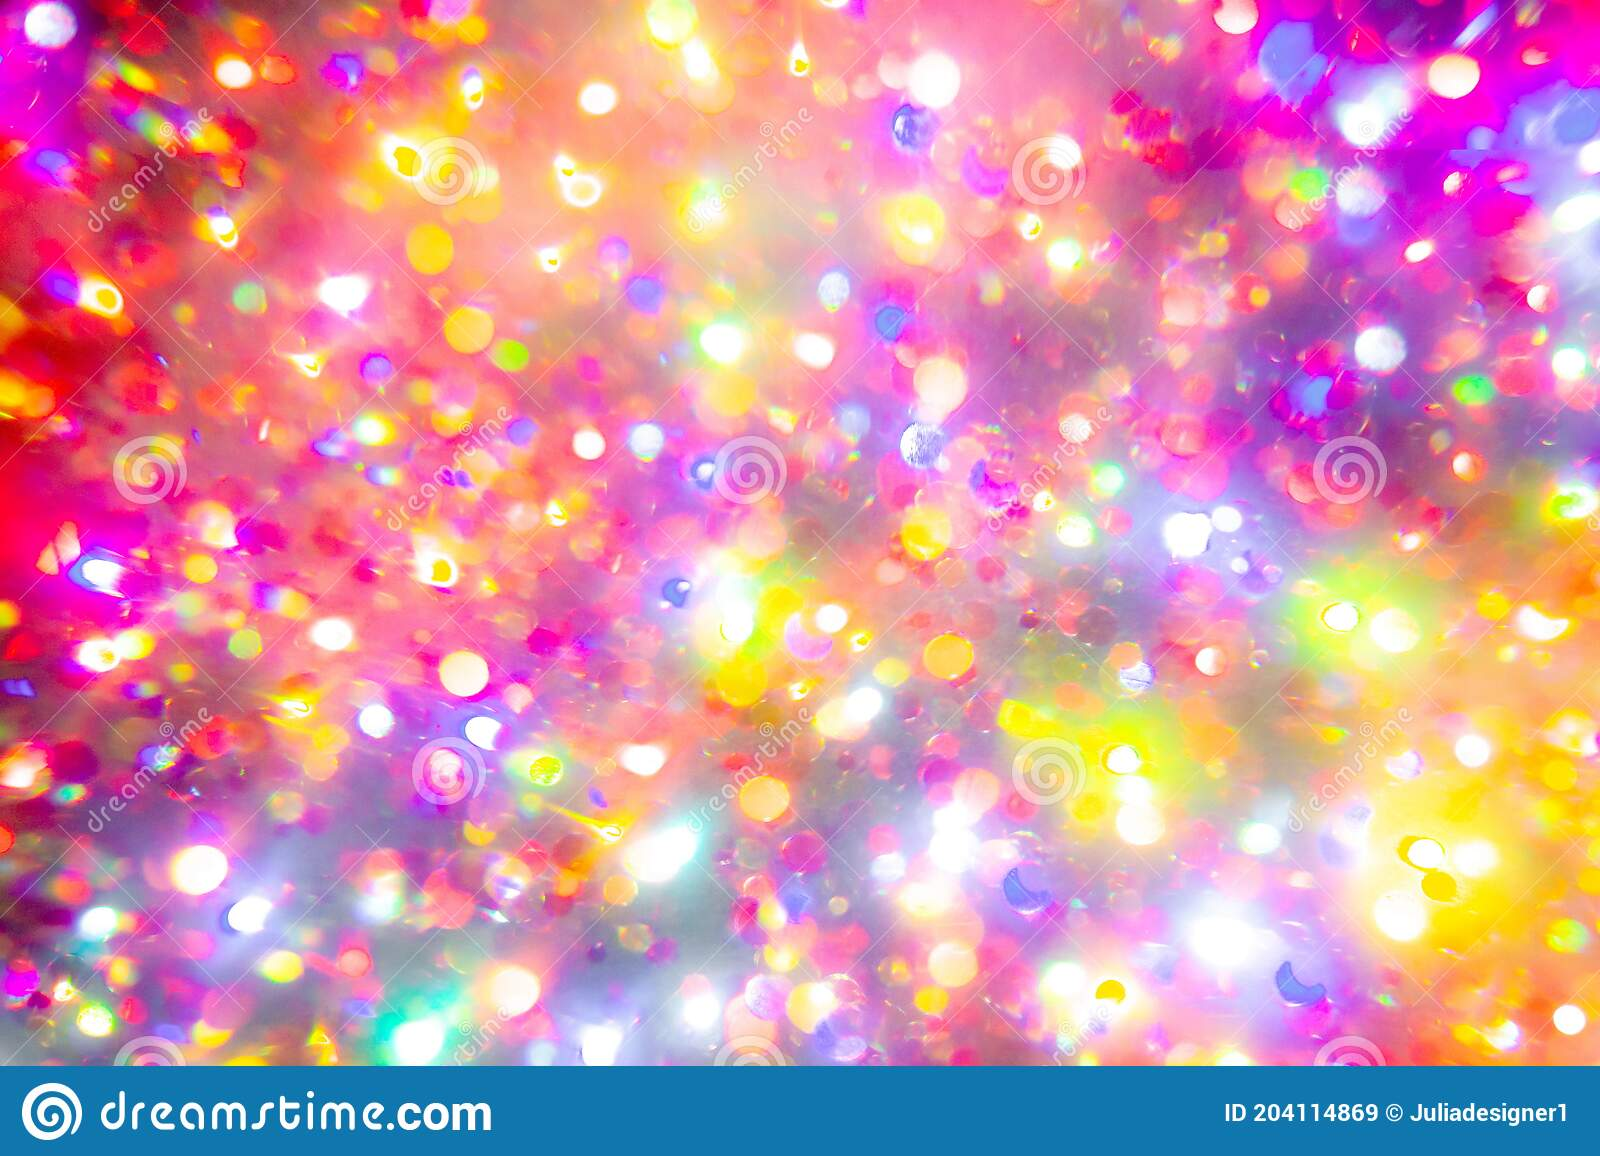 5 312 Rainbow Blurry Background Photos Free Royalty Free Stock Photos From Dreamstime